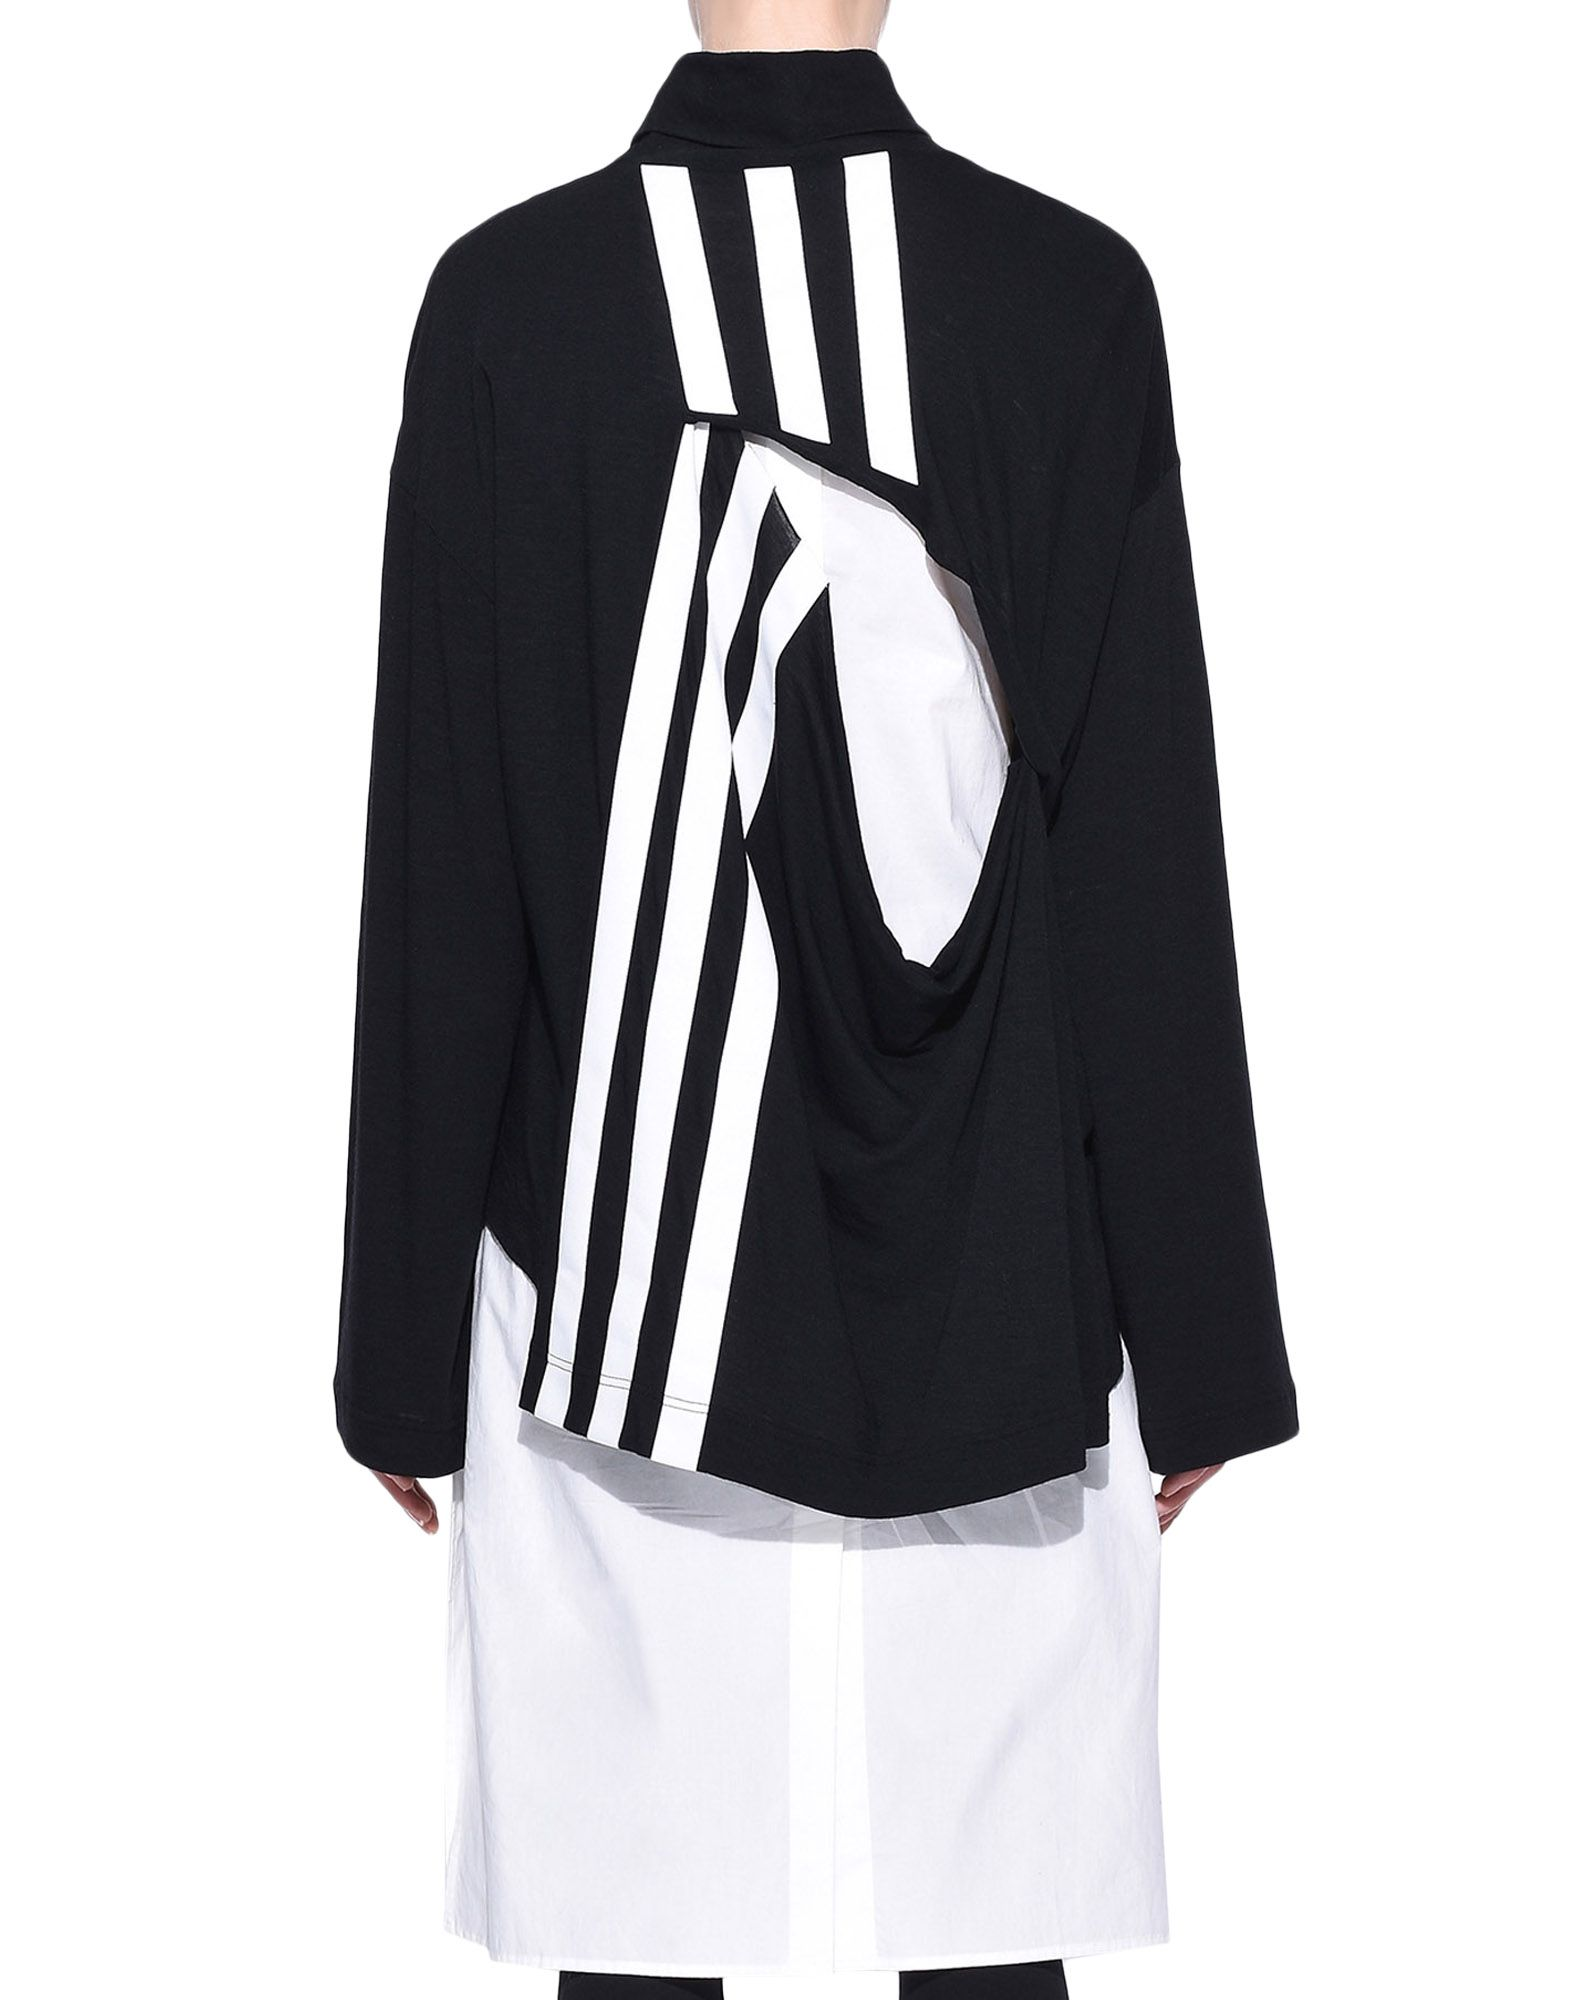 Y-3 Y-3 3-Stripes Layered Dress Vestito longuette Donna d